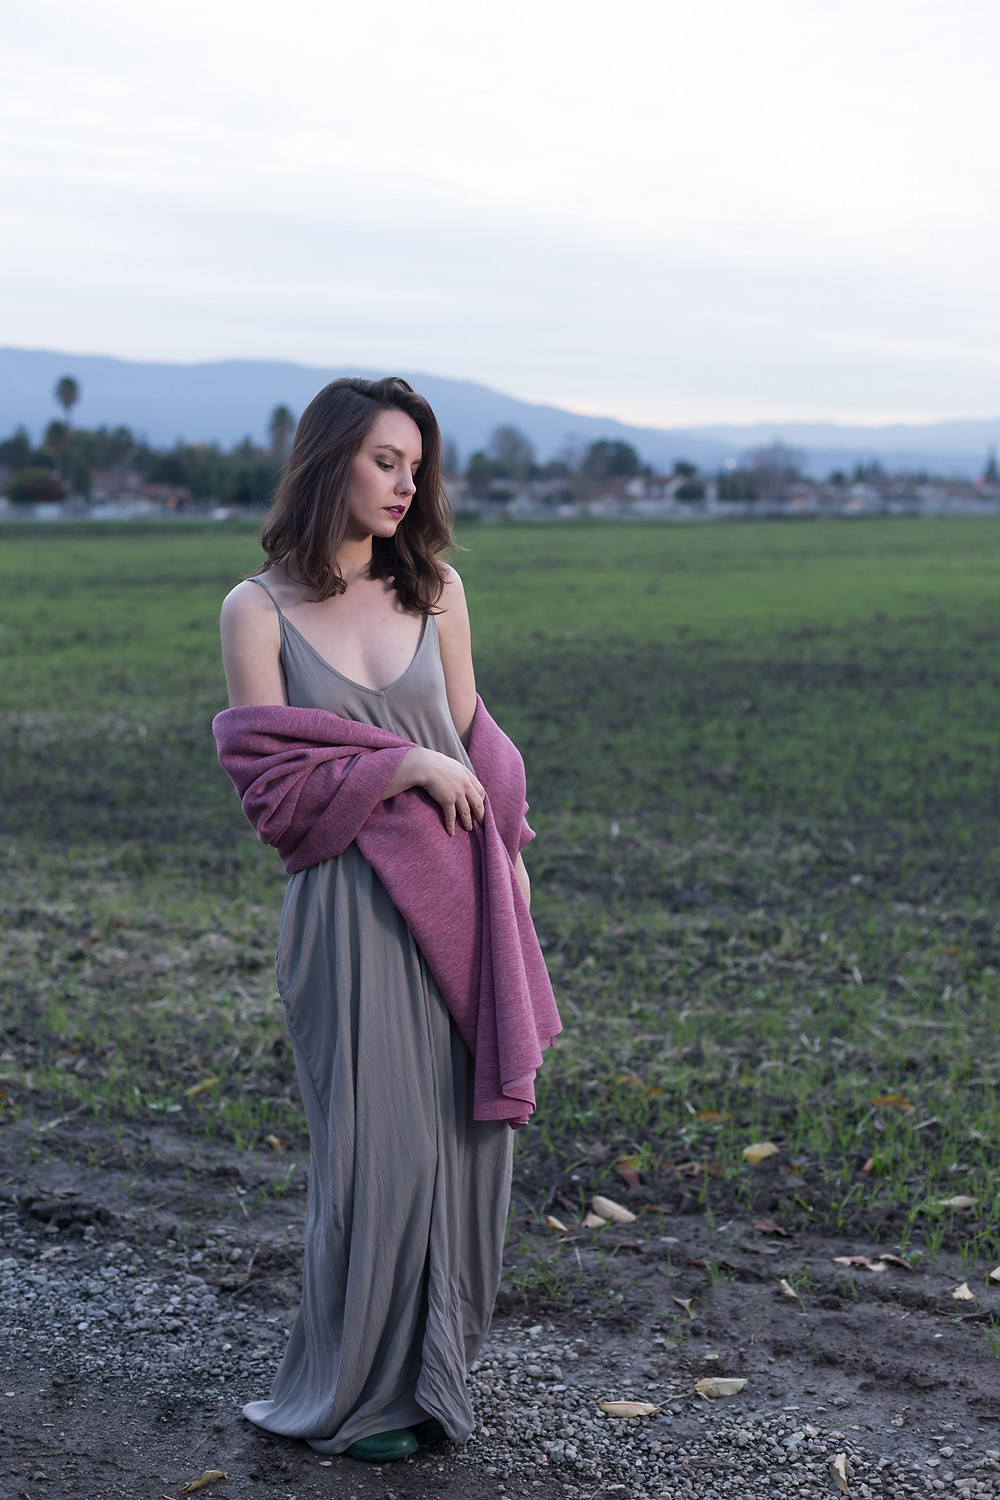 A photograph of the model in a field during sunset